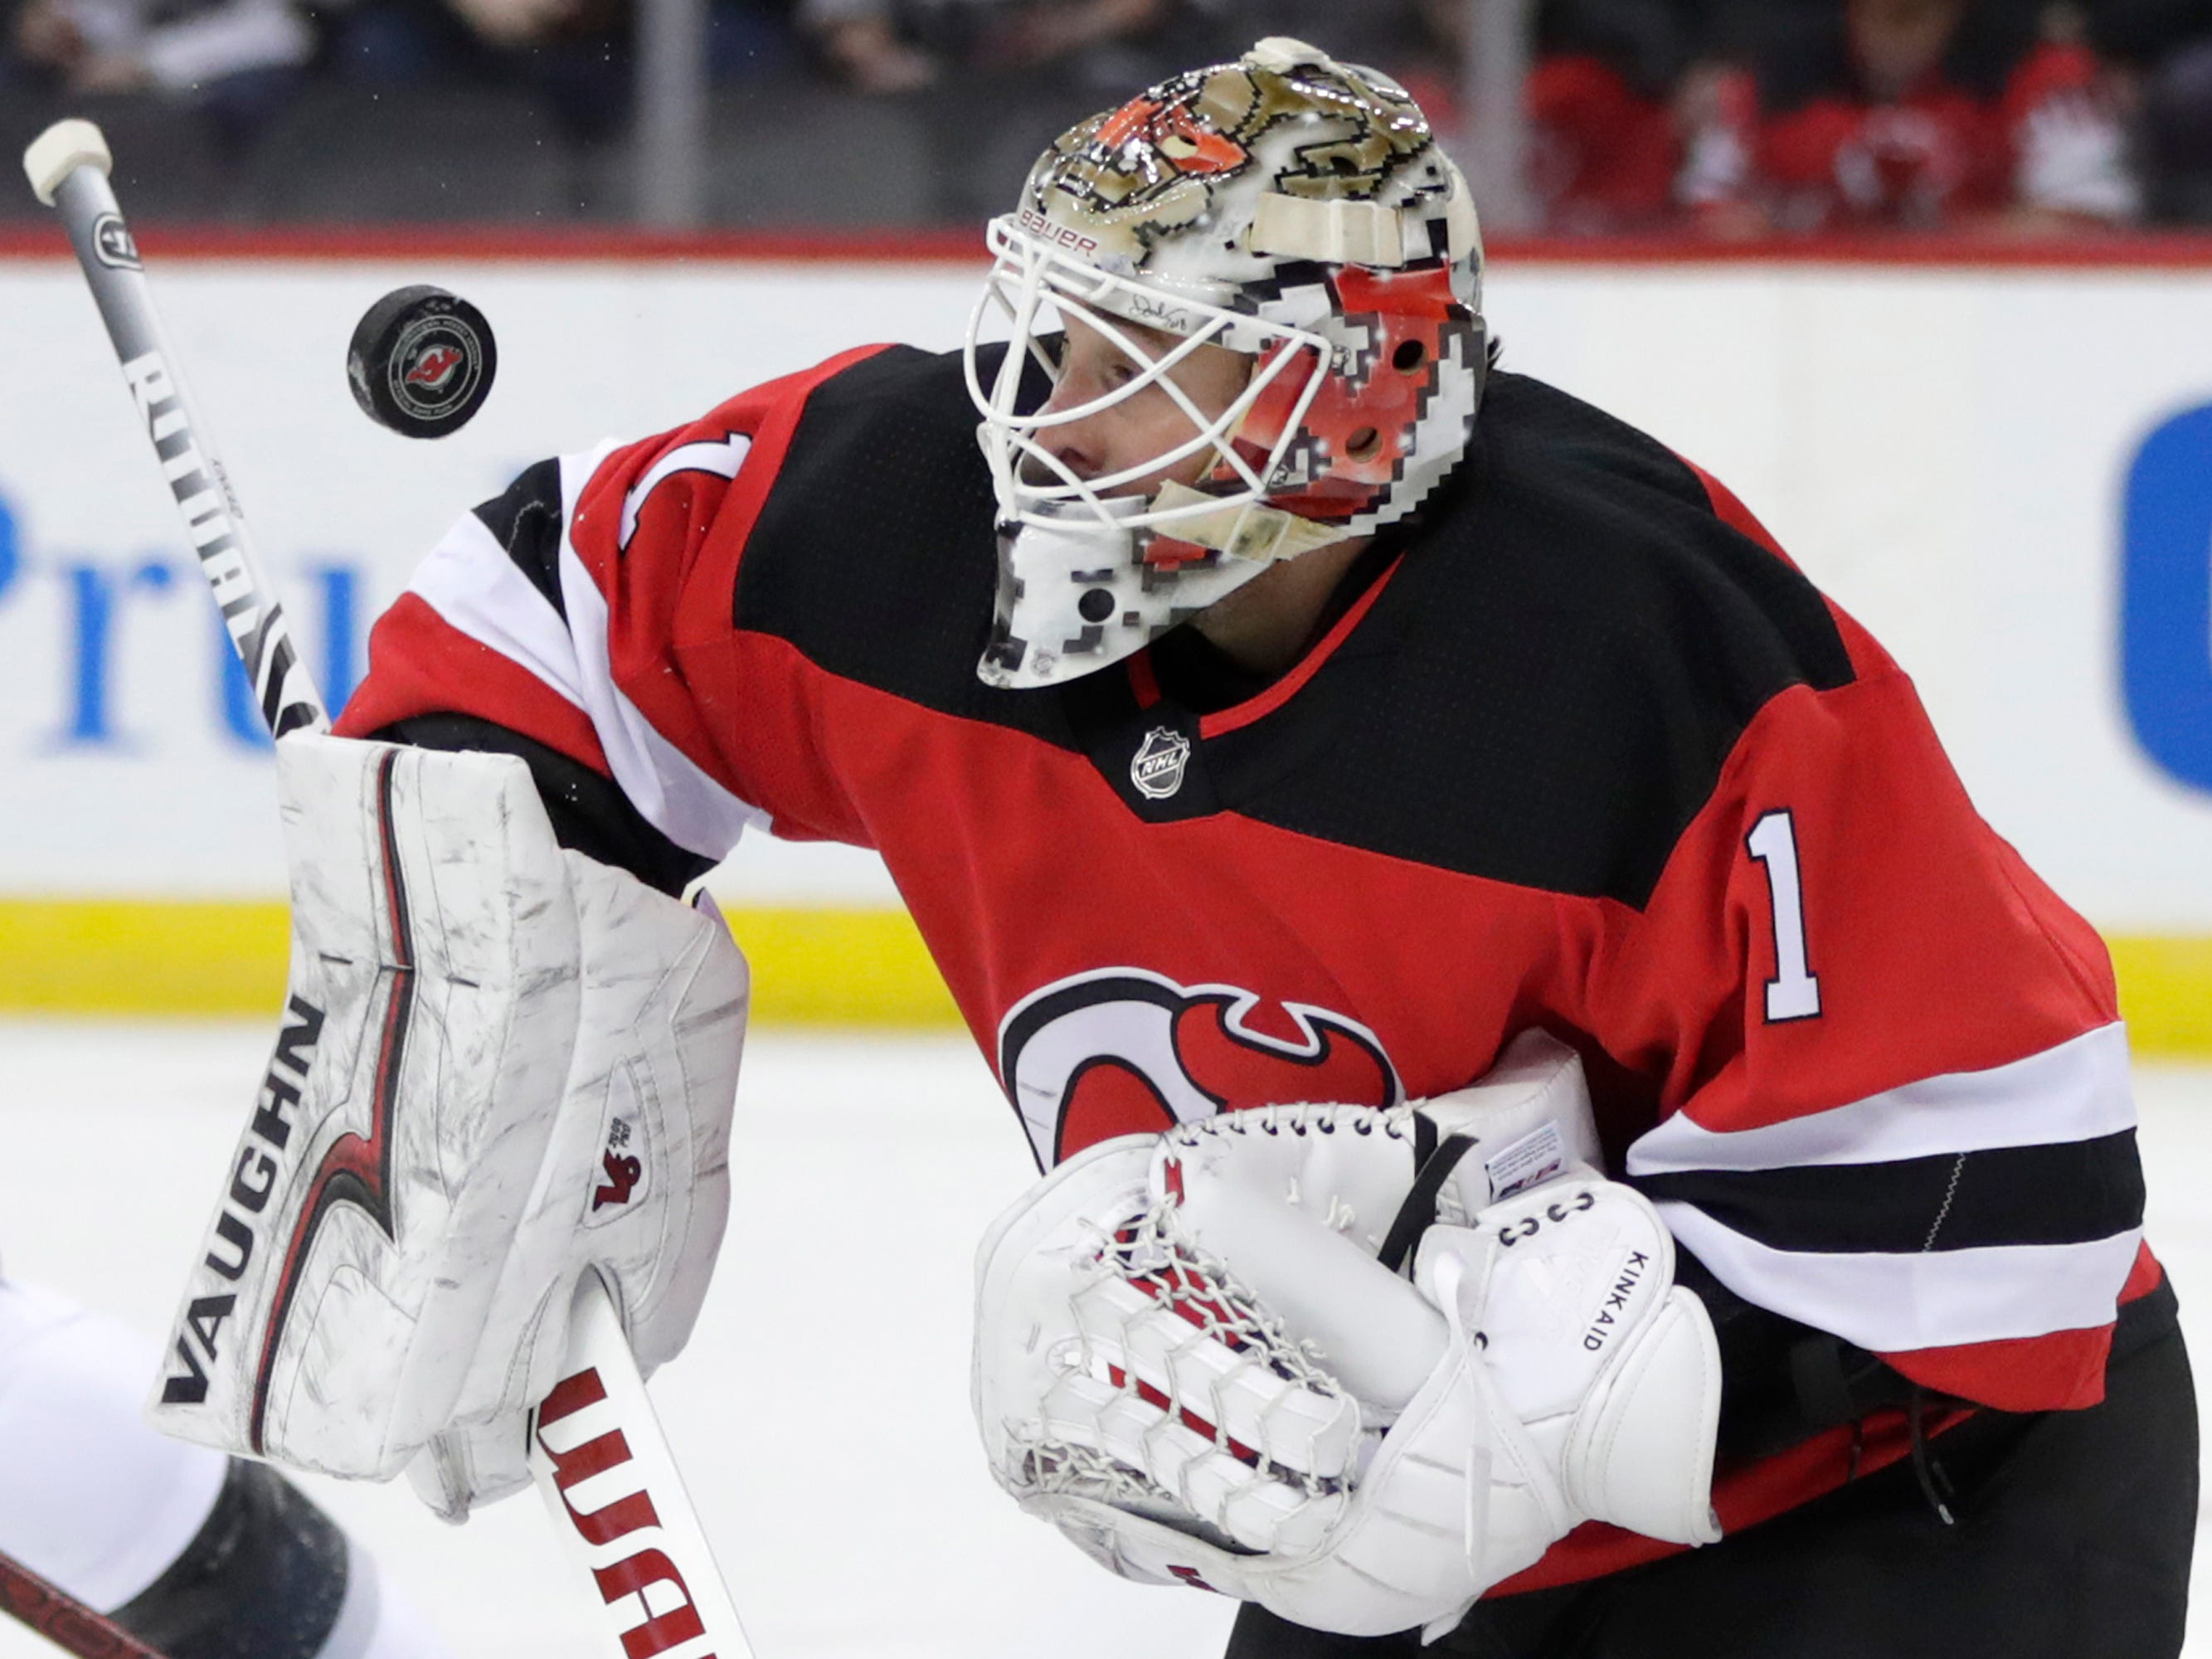 New Jersey Devils goaltender Keith Kinkaid (1) makes a save against the Los Angeles Kings during the first period of an NHL hockey game Tuesday, Feb. 5, 2019, in Newark, N.J.